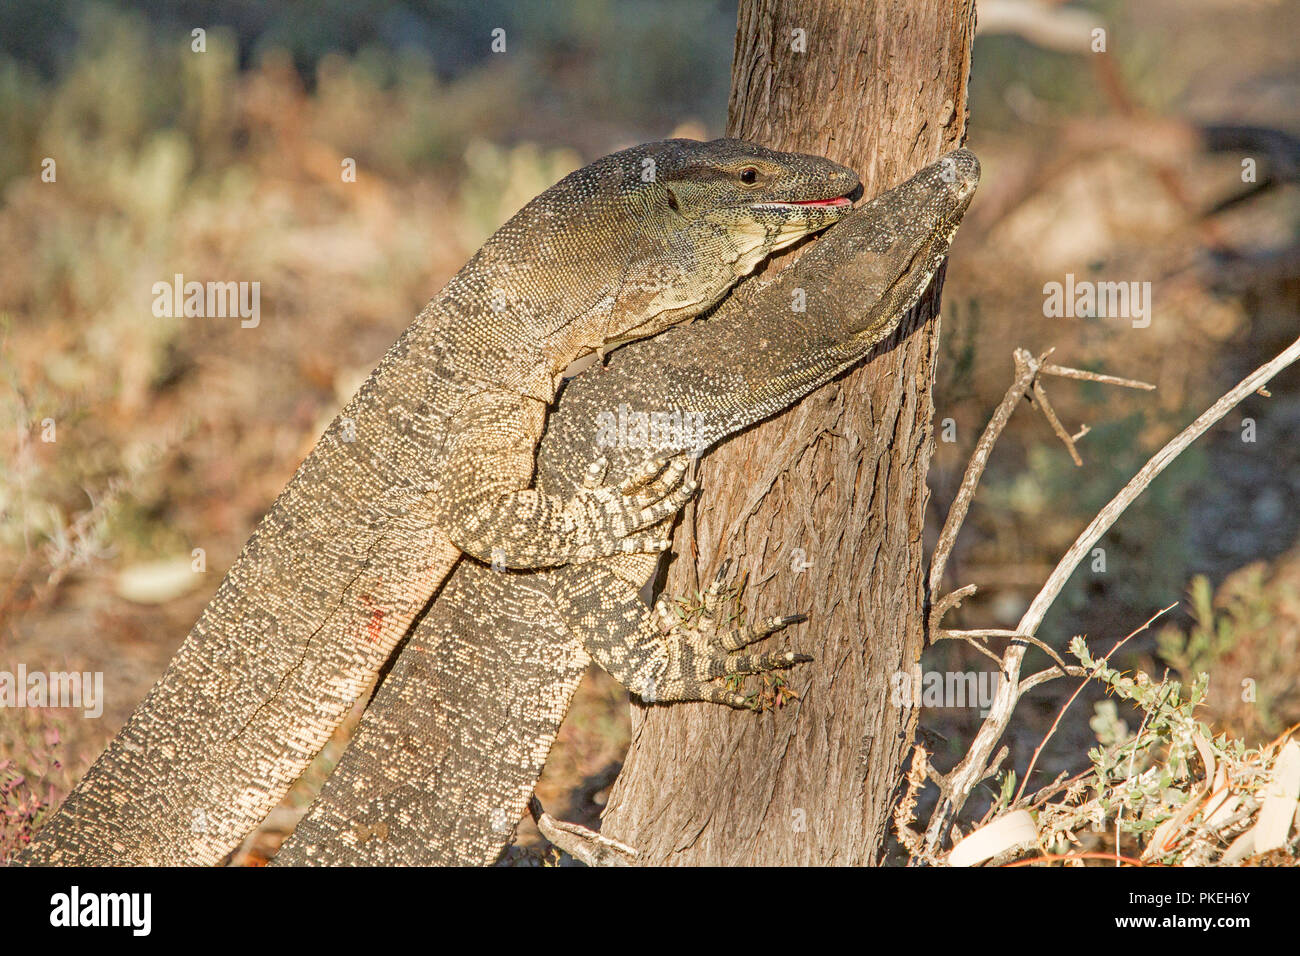 Two Australian goannas / lace monitor lizards mating in the wild at Culgoa National Park in outback NSW - Stock Image